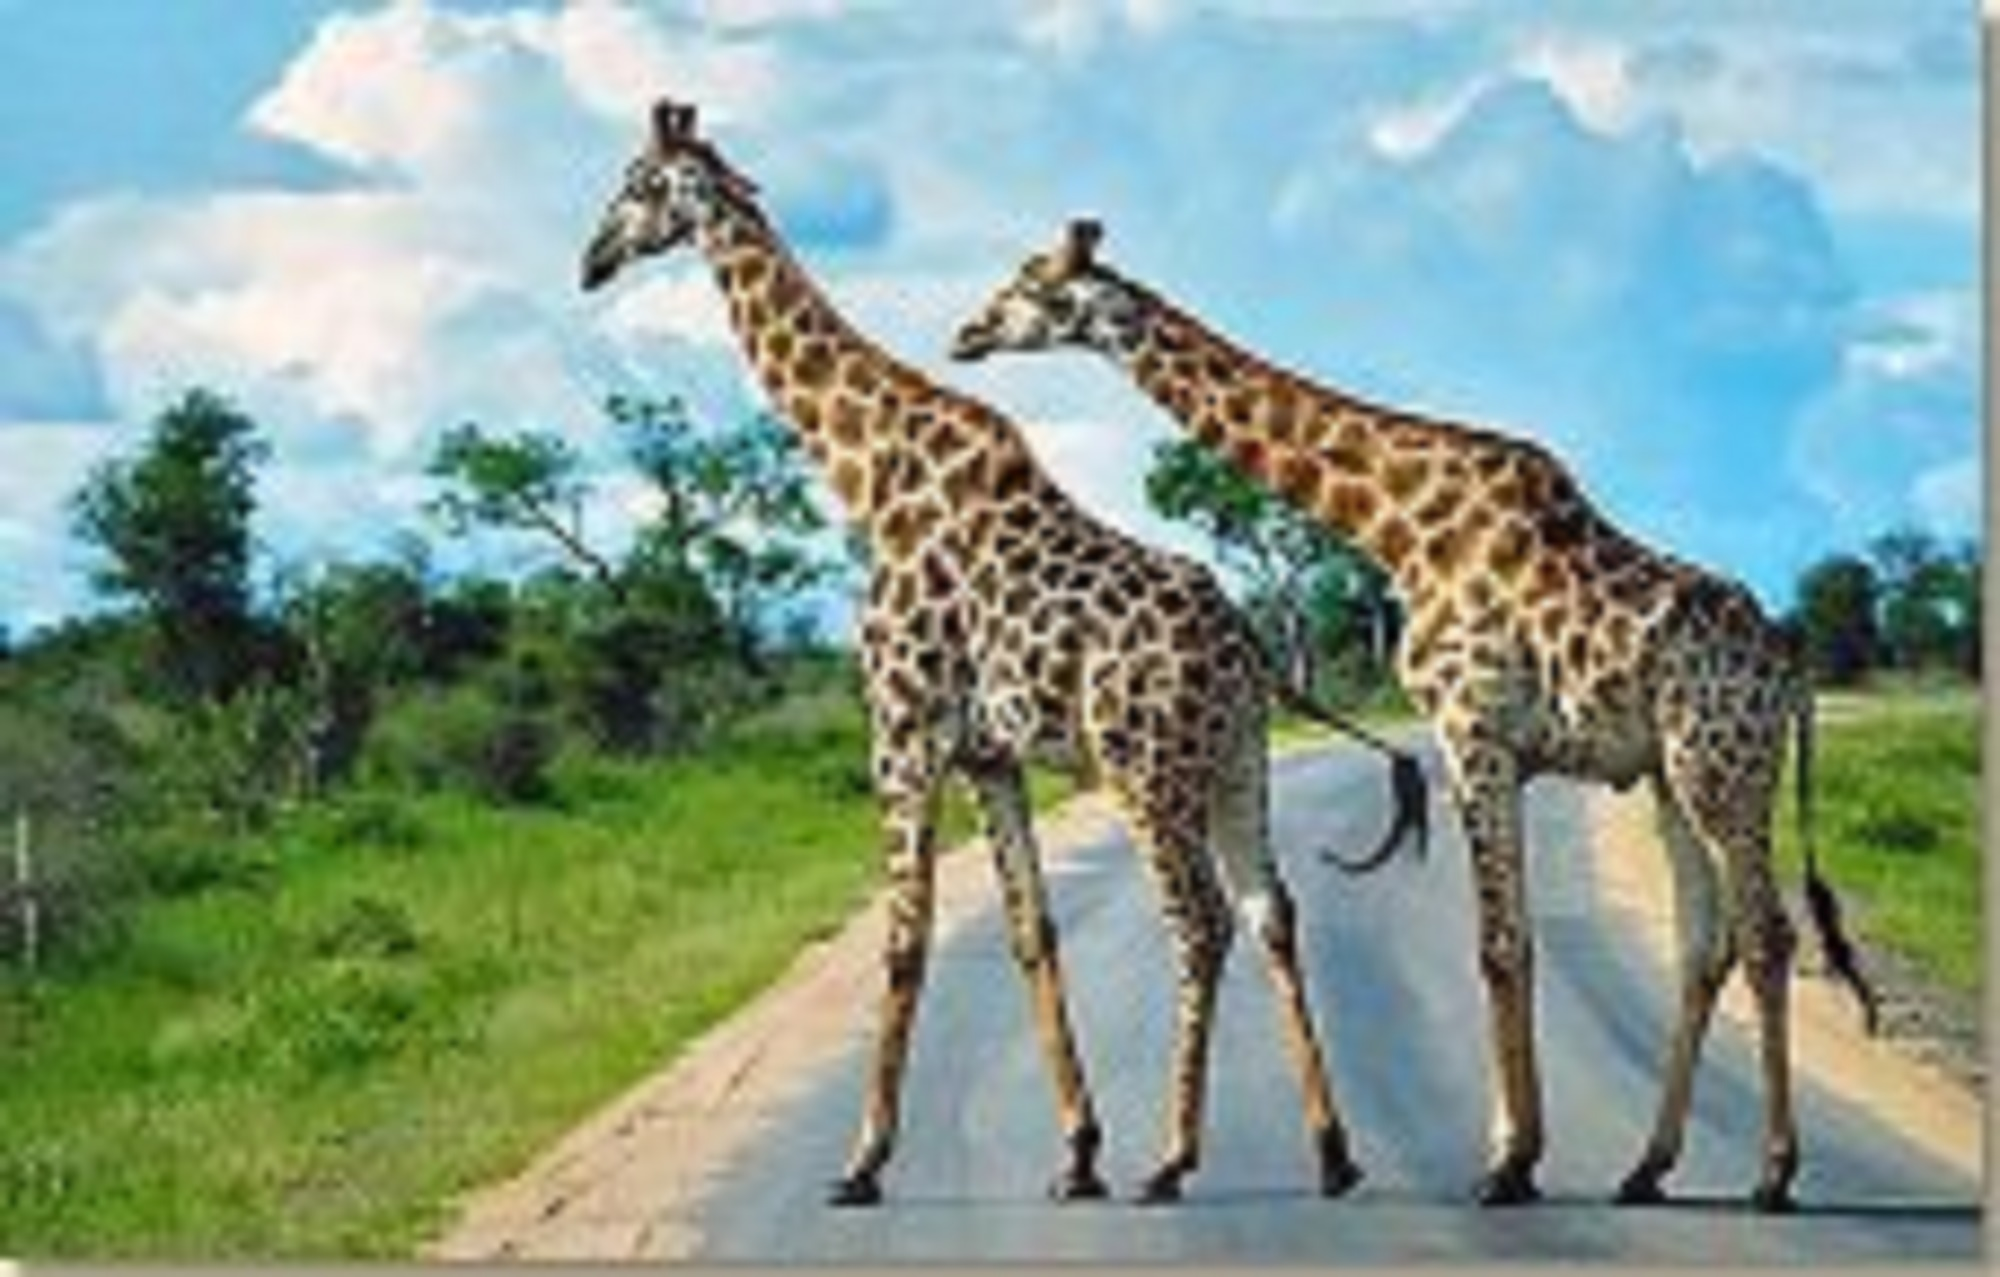 South African Vacations and Giraffes in the Kruger National Park